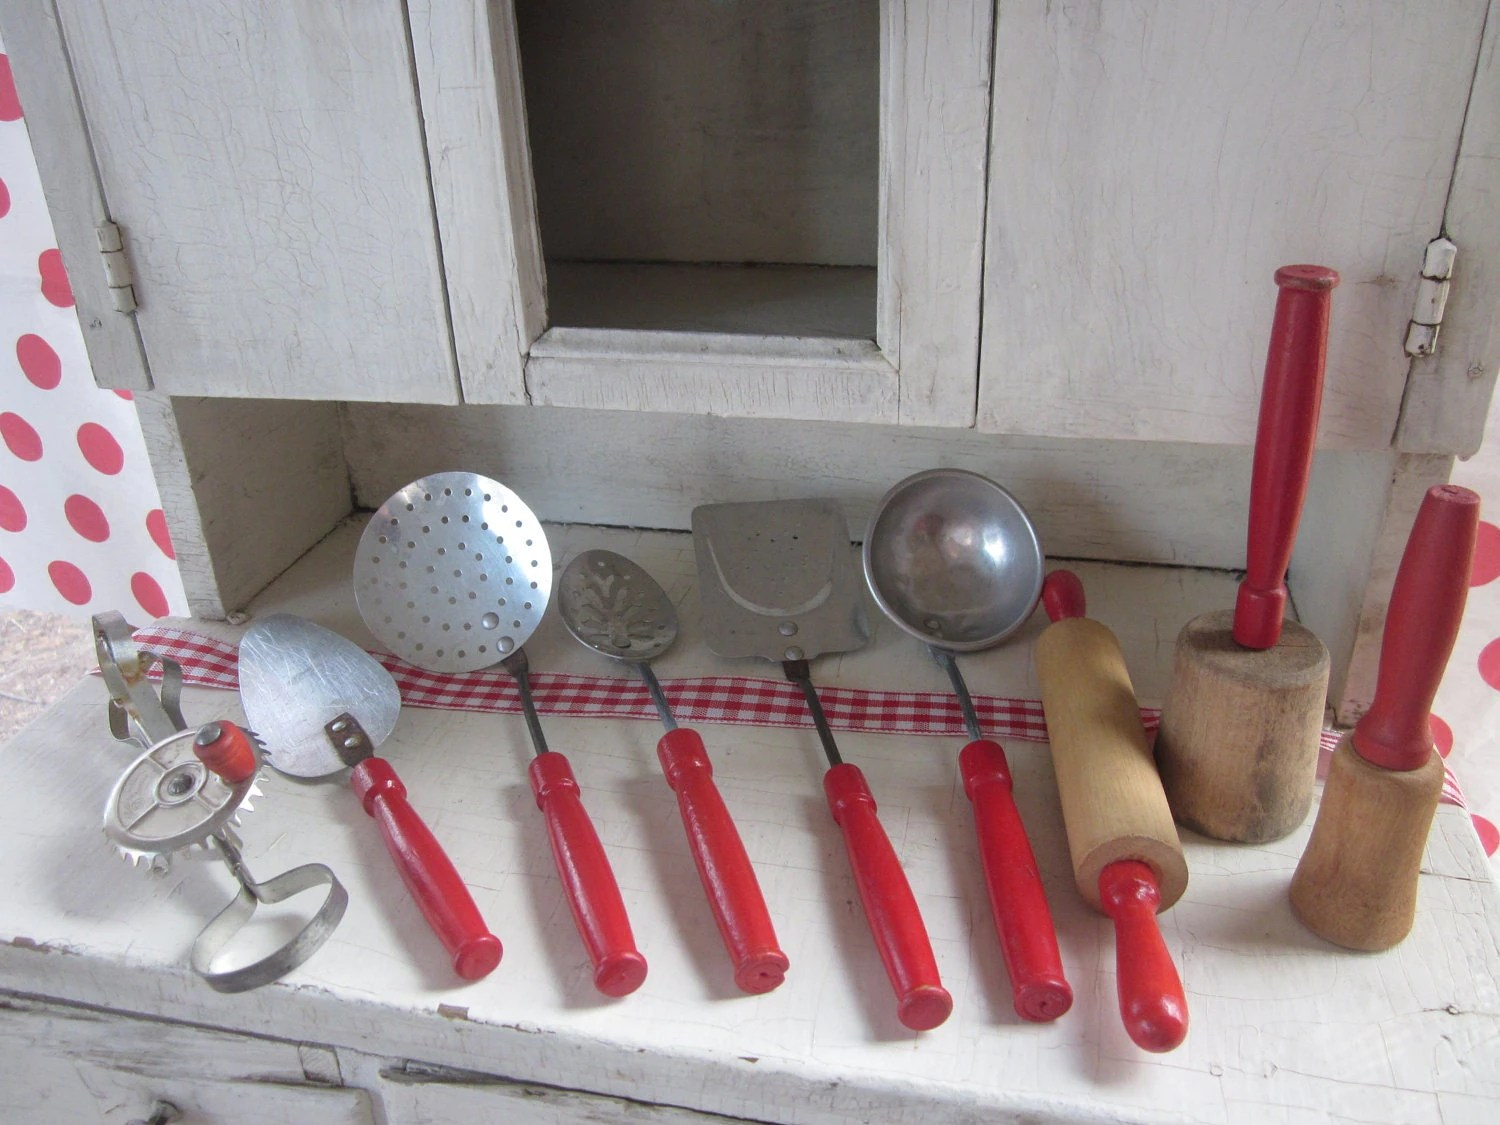 Kitchen Set Name Vintage Toy Kitchen Utensils Red Handle Metal